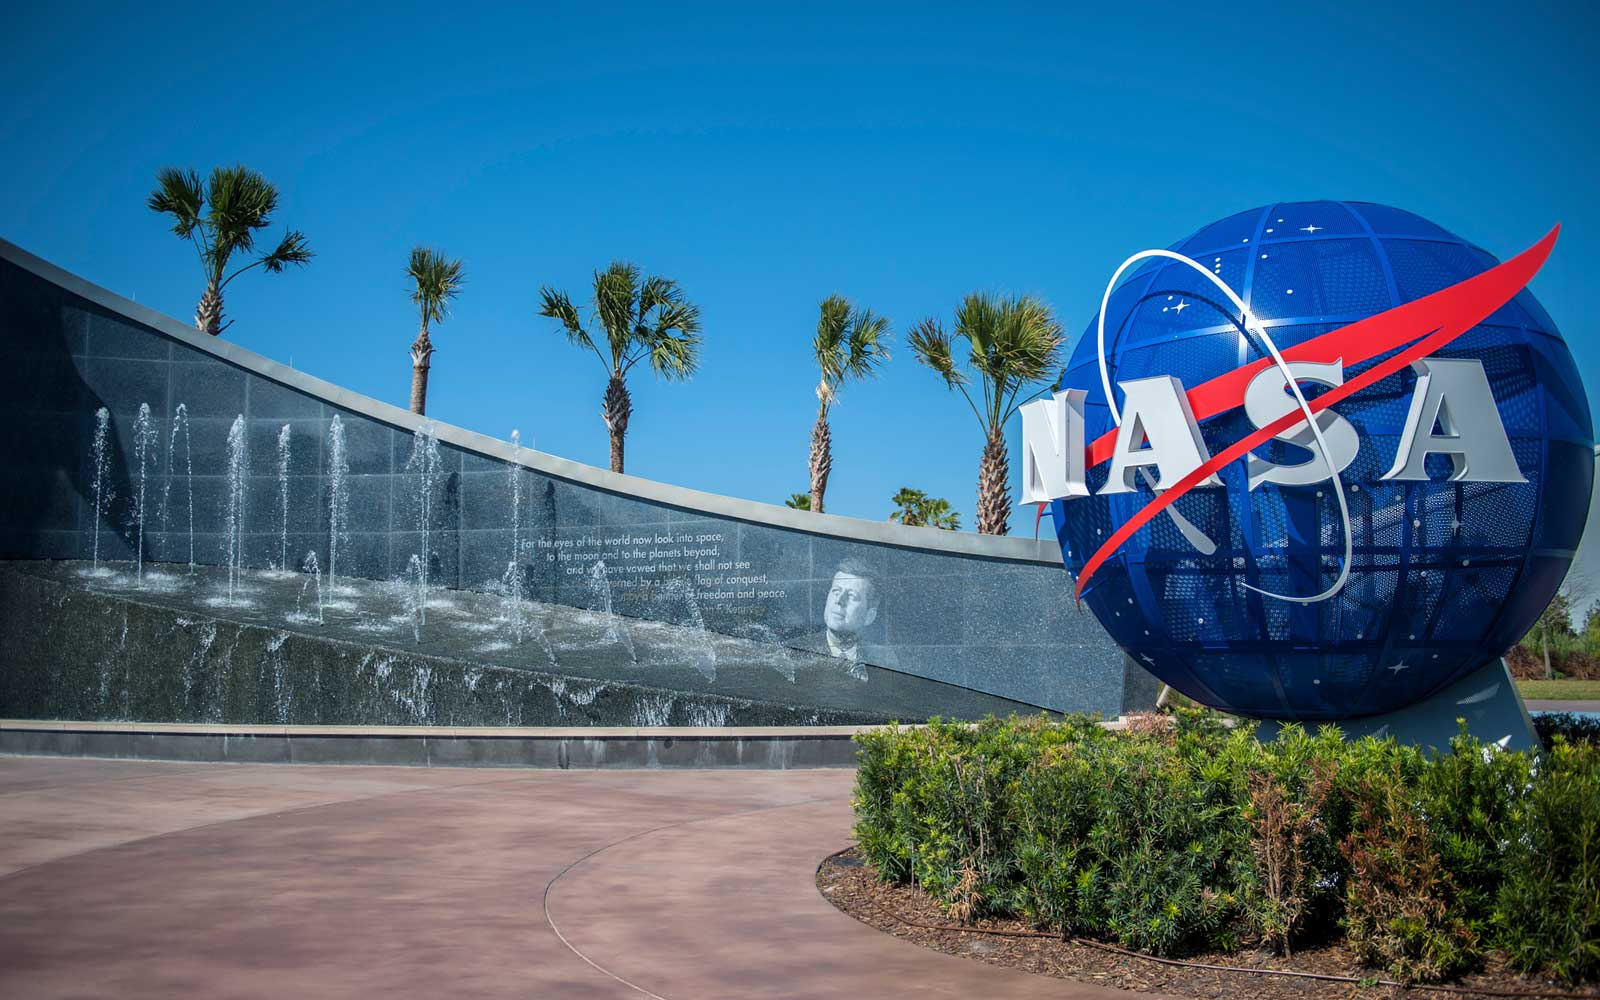 kennedy-space-center-HFGUIDE0217.jpg